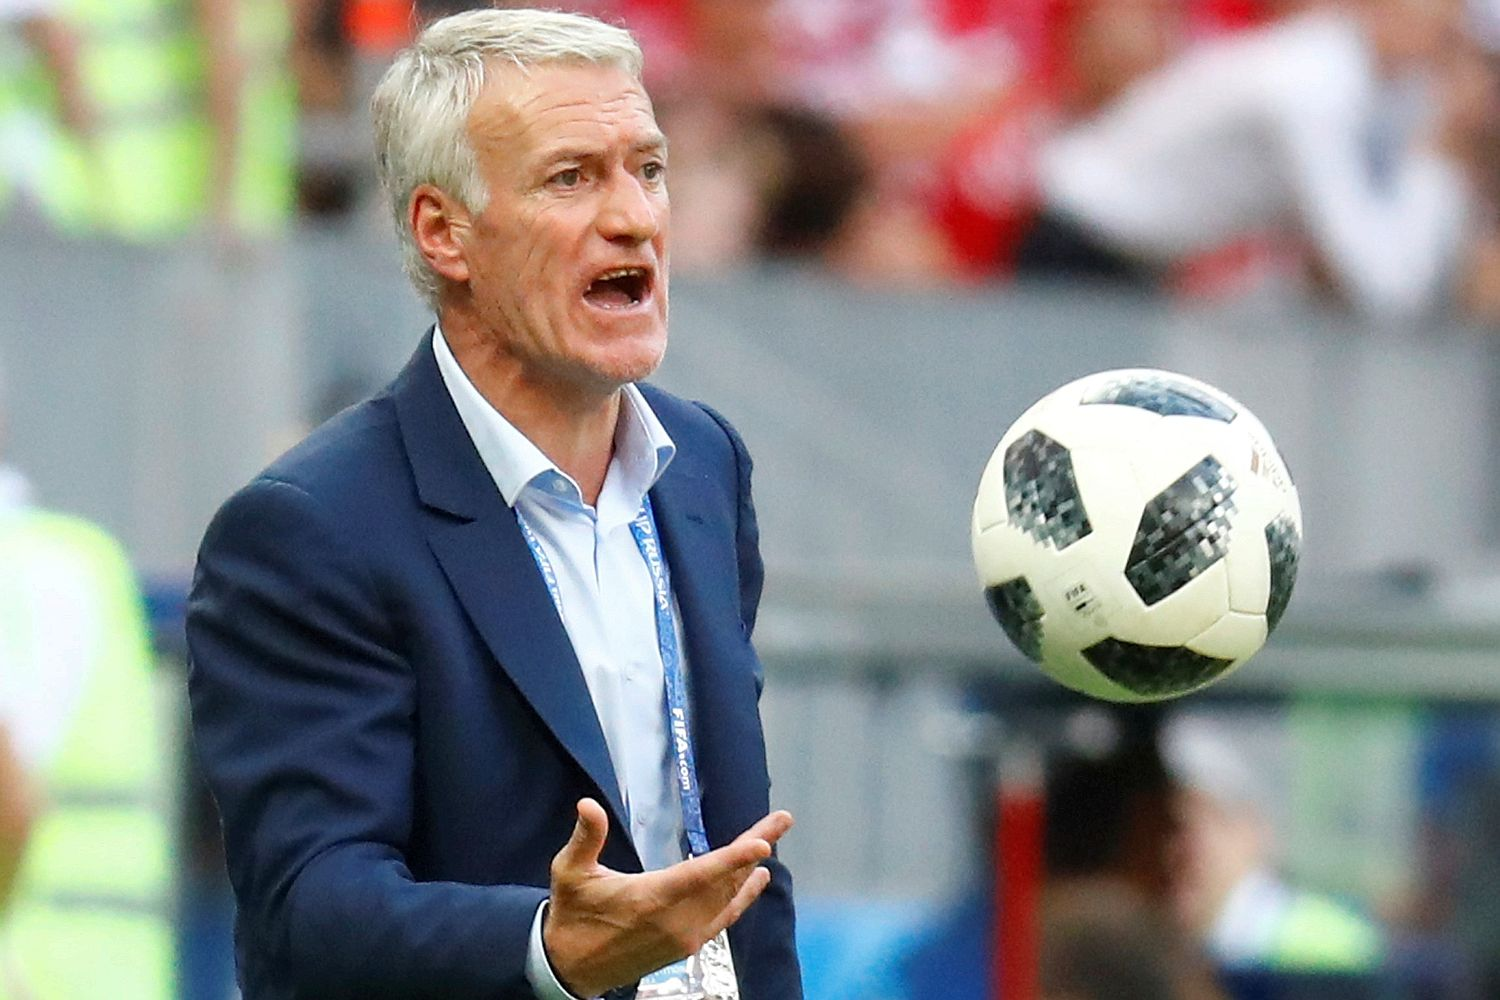 World Cup  Didier Deschamps staying resolute as Argentina challenge     Deschamps led France to qualification for the knockout stage as group  winners but the fans are